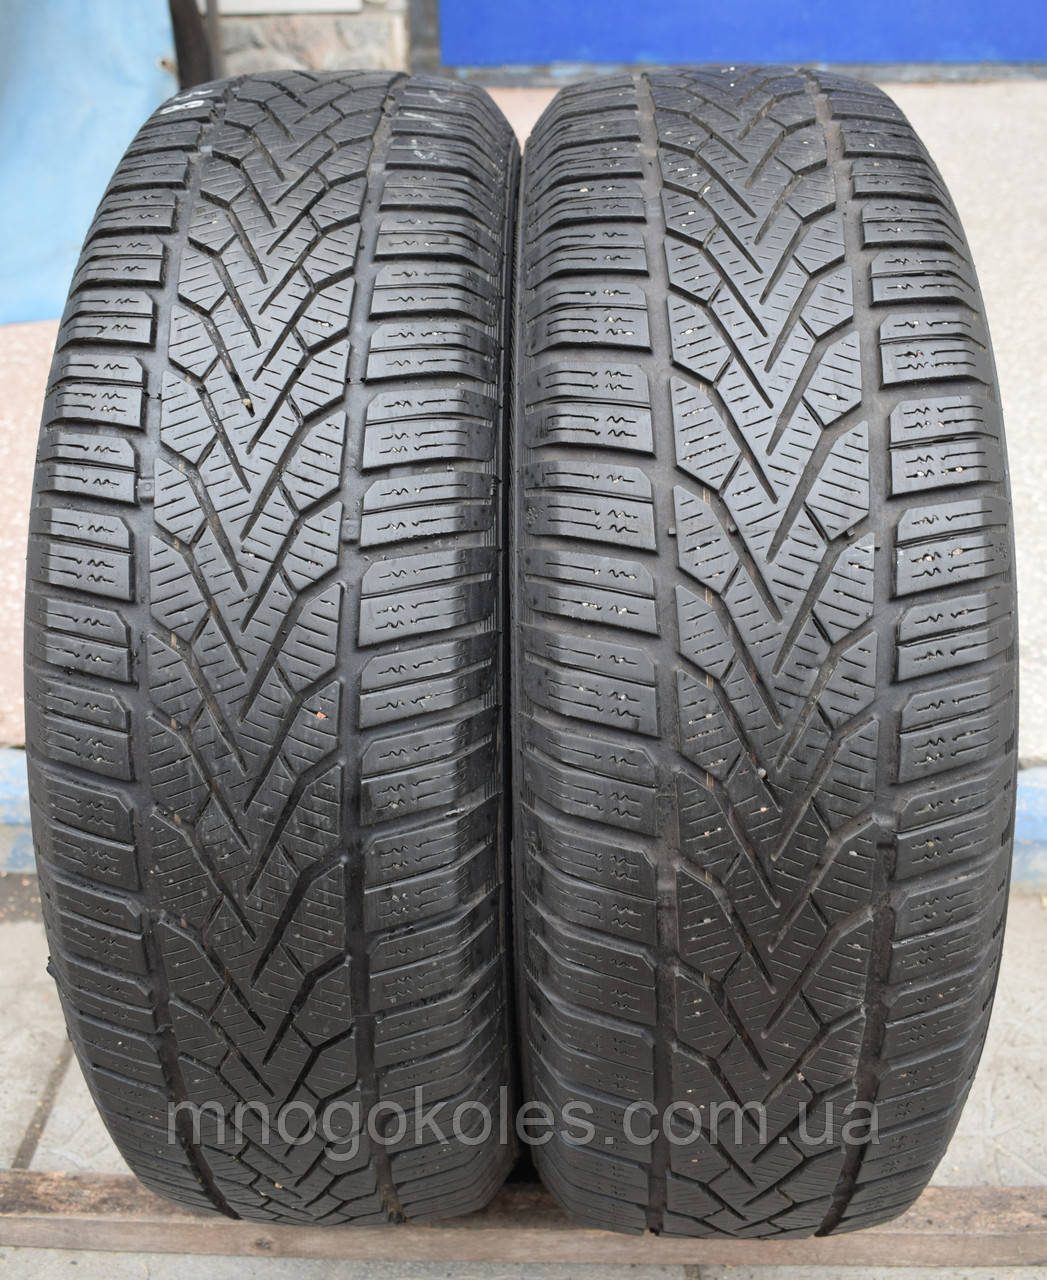 Шины б/у 195/65 R15 Semperit Speed Grip 2, ЗИМА, 5+ мм, пара